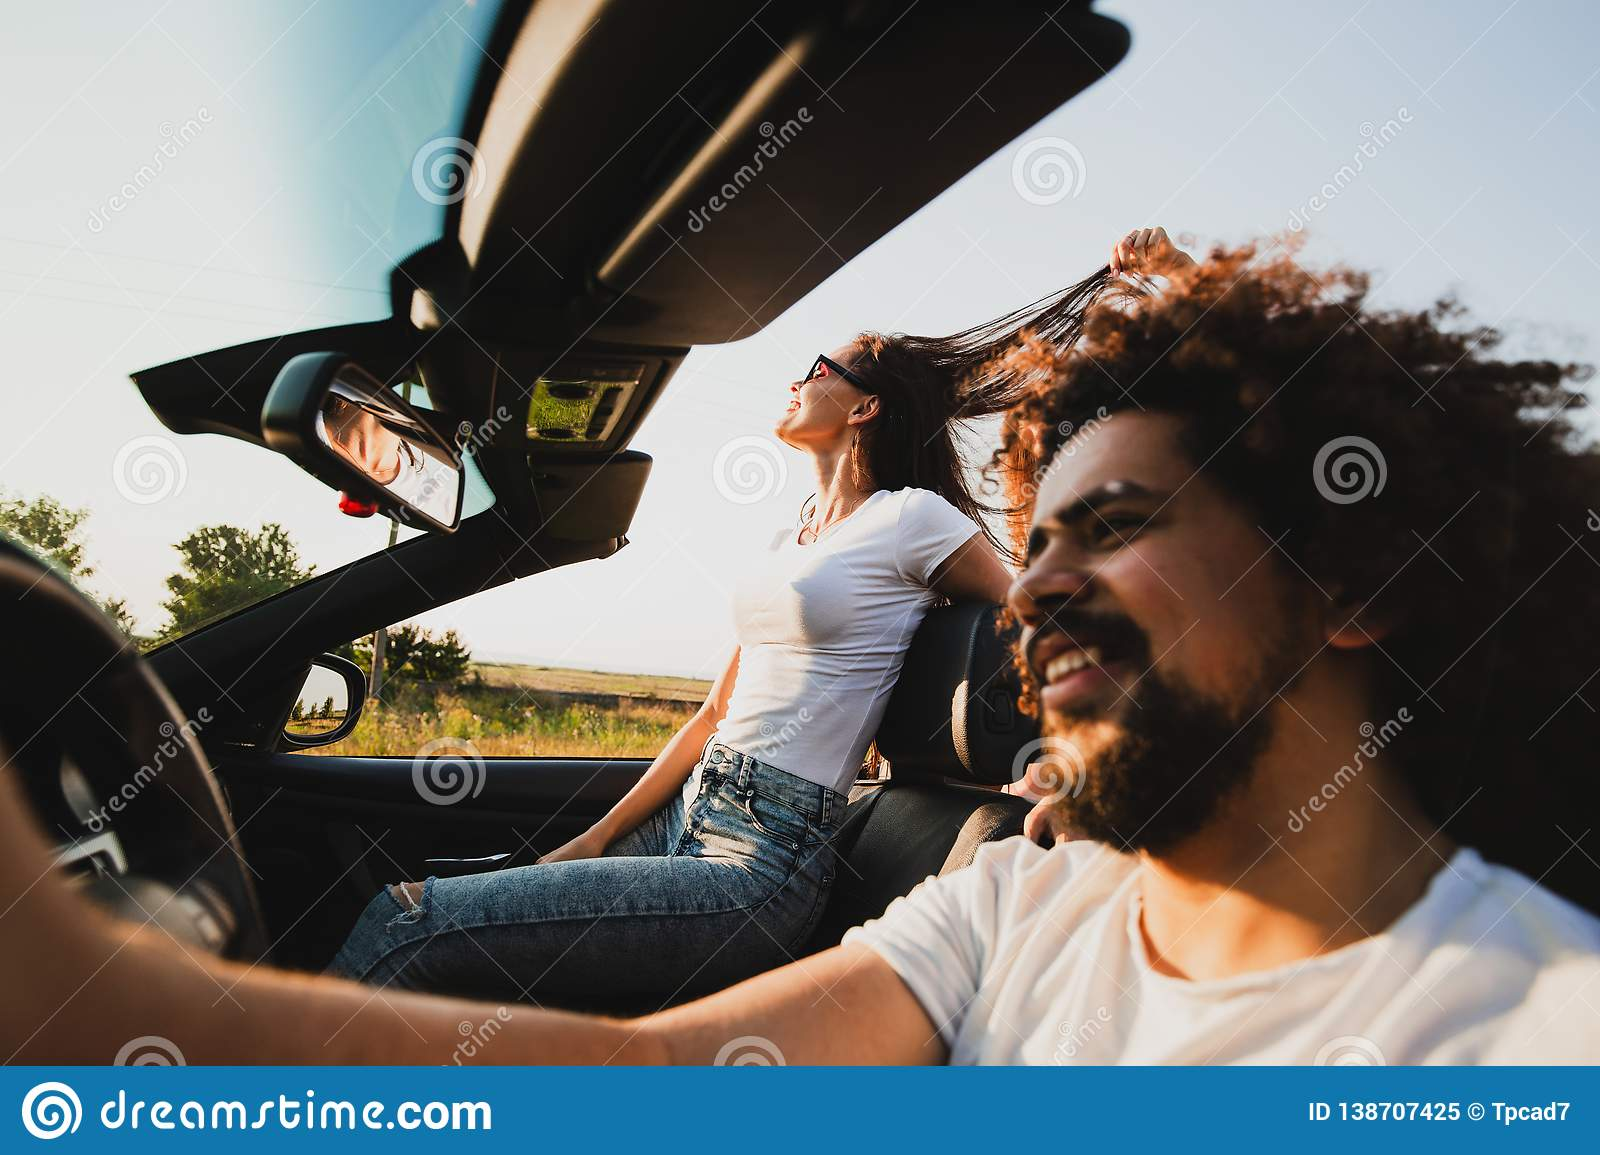 Curly dark-haired young man sitting at the wheel of a black cabriolet and beautiful woman is sitting next to him on a